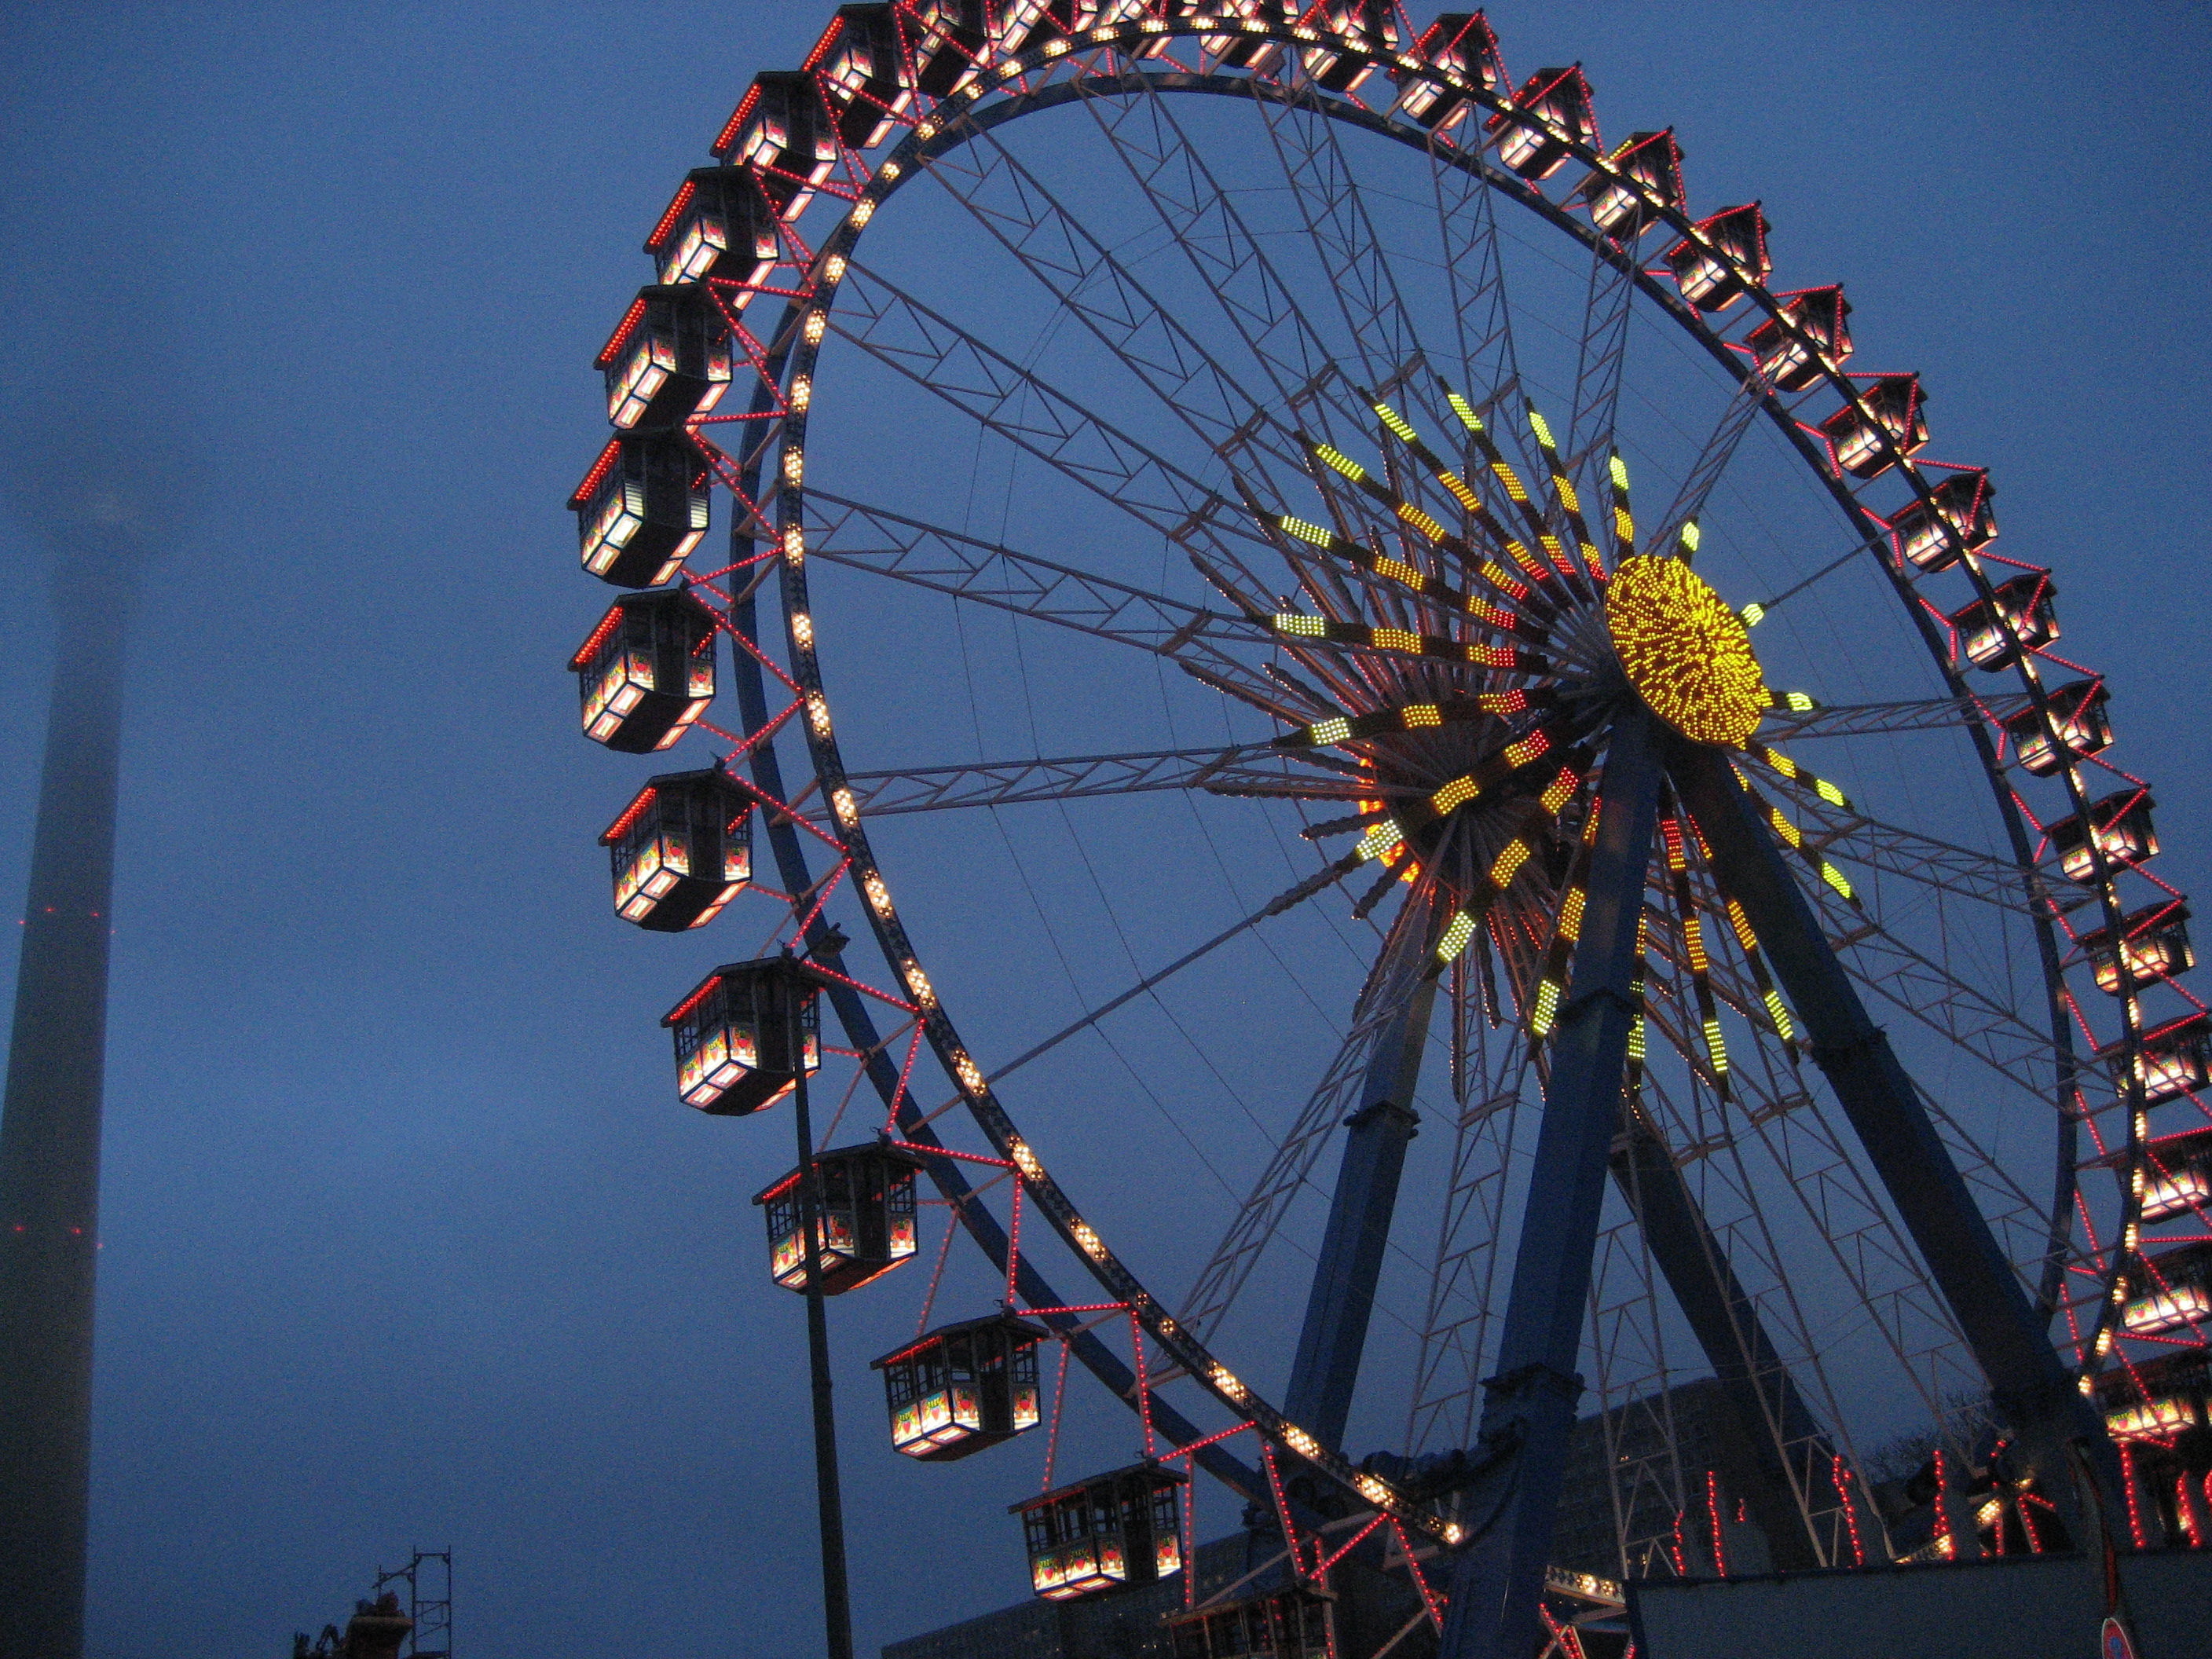 1000+ Images About Ferris Wheel On Pinterest